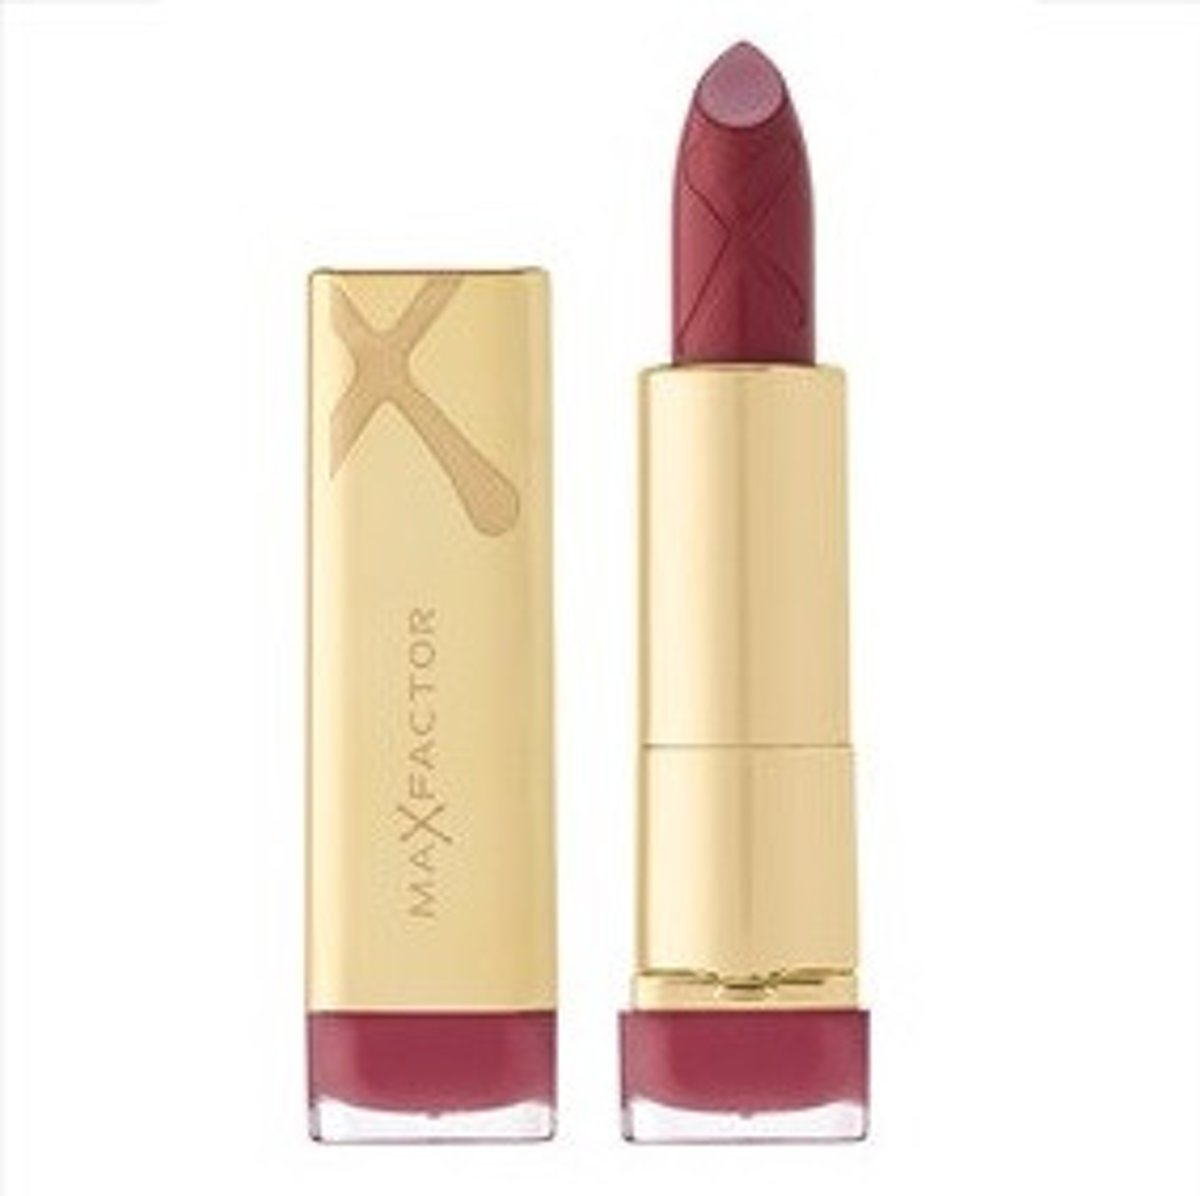 Max Factor Colour Elixir Lipstick - 711 Midnight Mauve